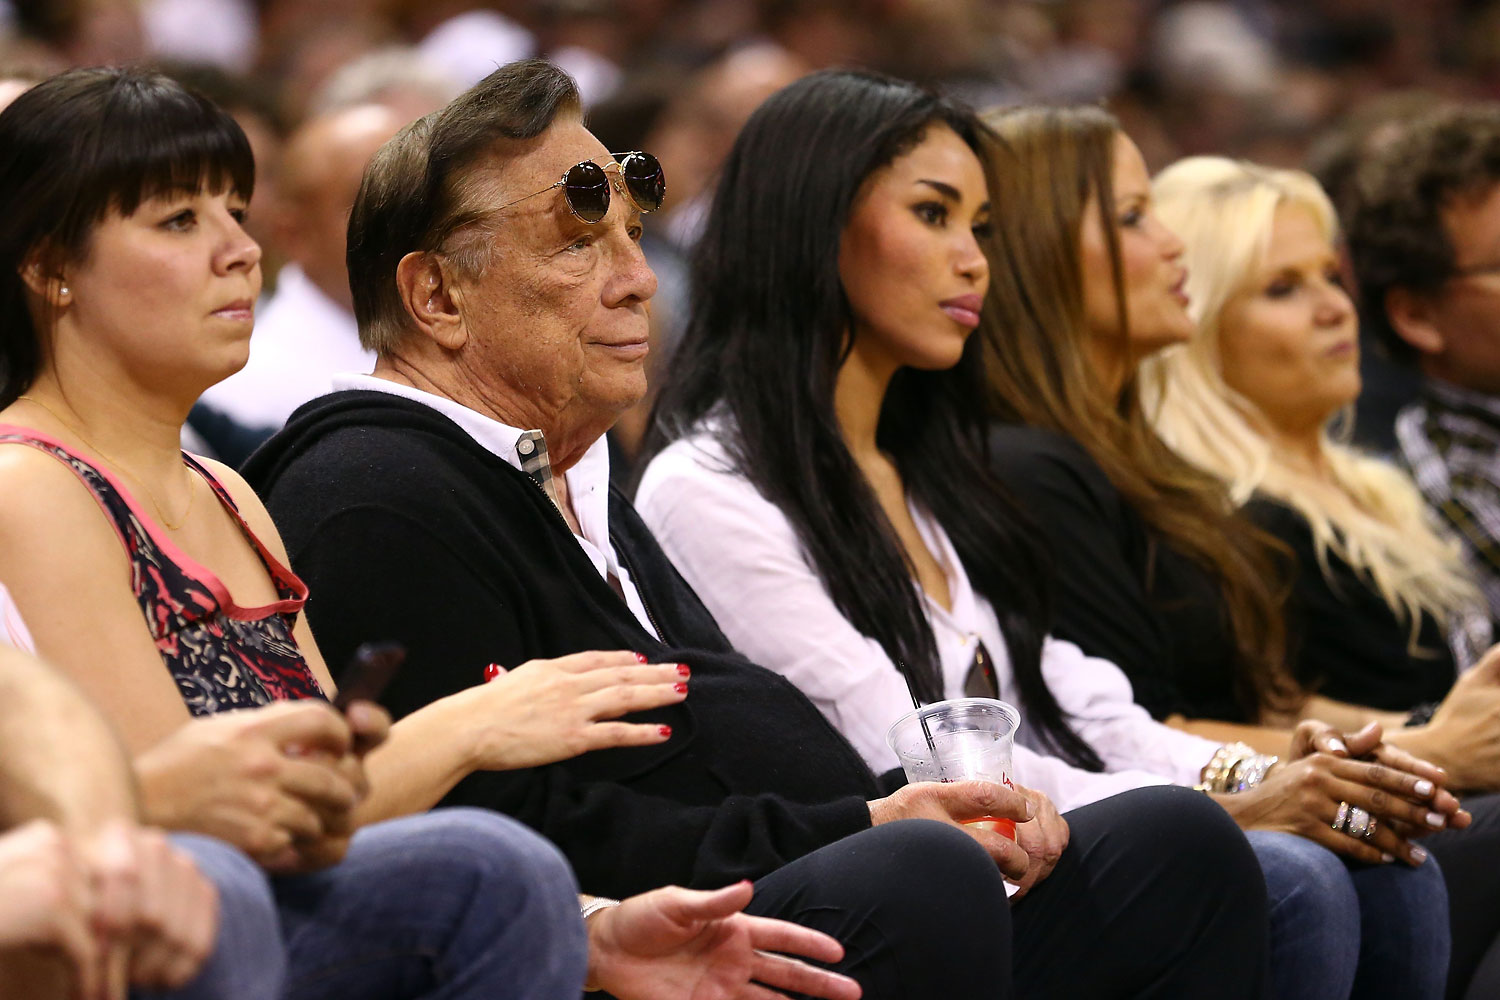 Donald Sterling, second left, and girlfriend V. Stiviano, third left, during a playoff game of the Western Conference Finals of the 2013 NBA Playoffs at AT&T Center on May 19, 2013 in San Antonio.